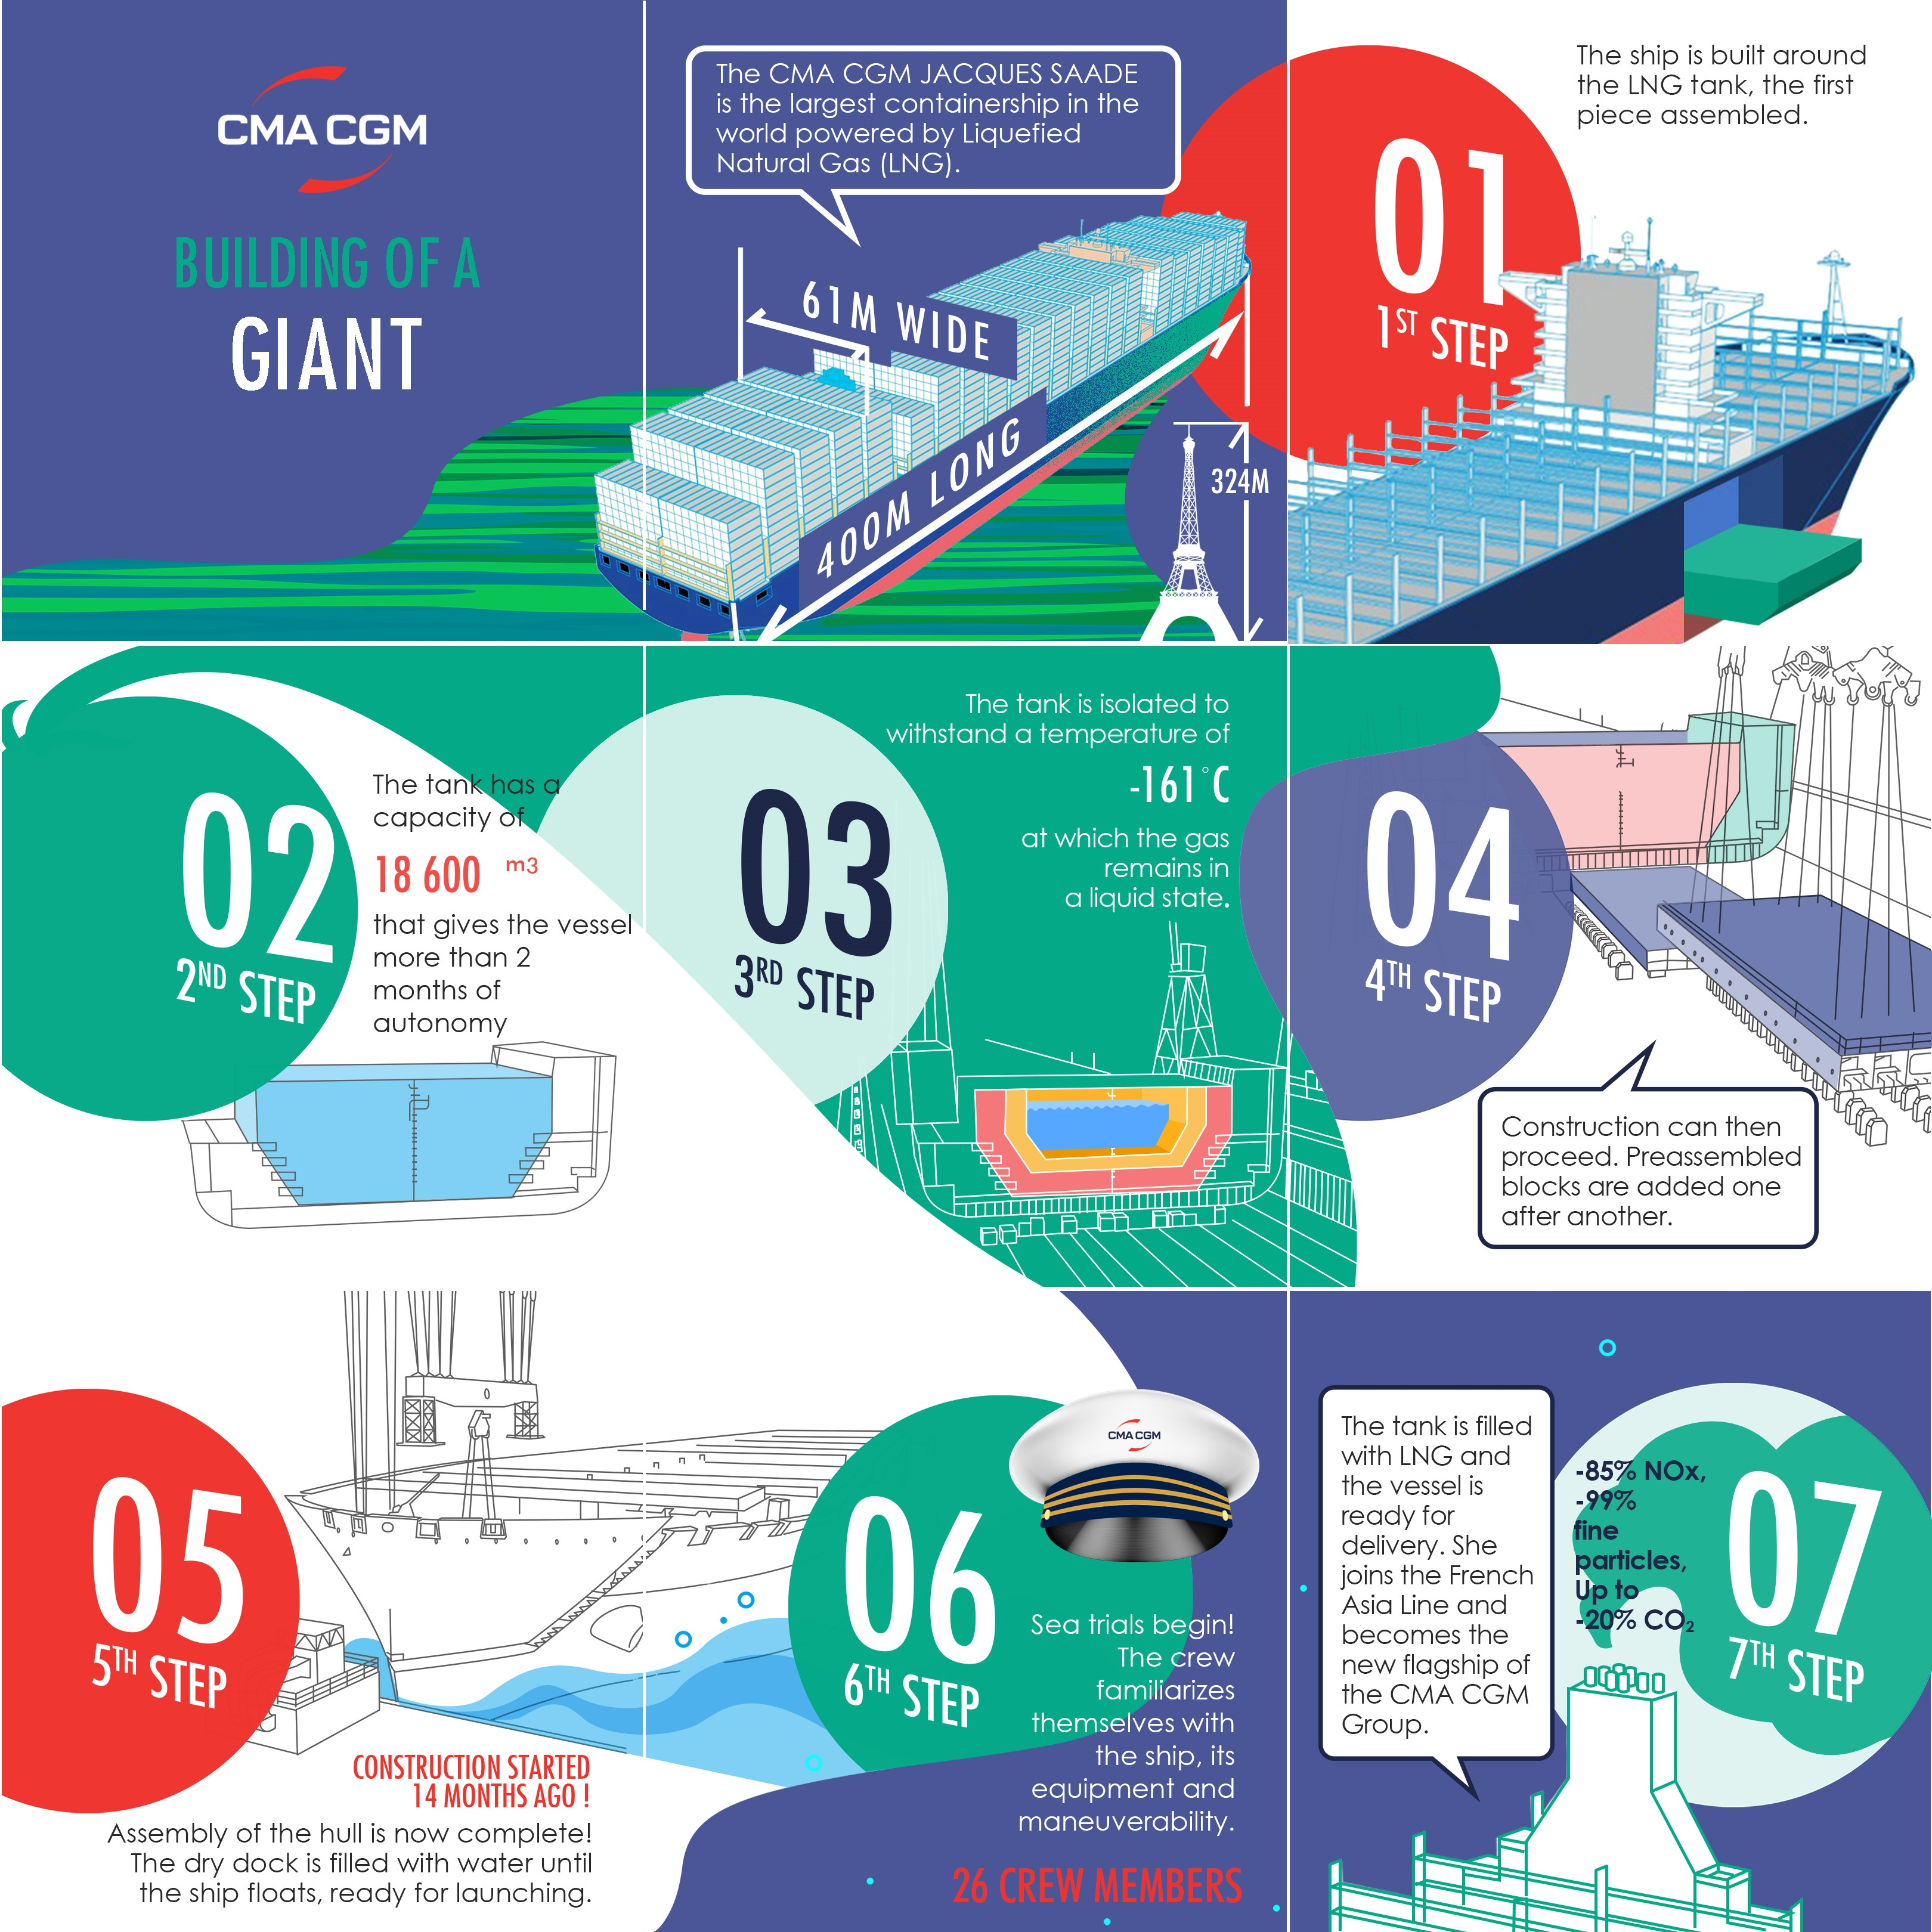 Construction of the CMA CGM JACQUES SAADE LNG